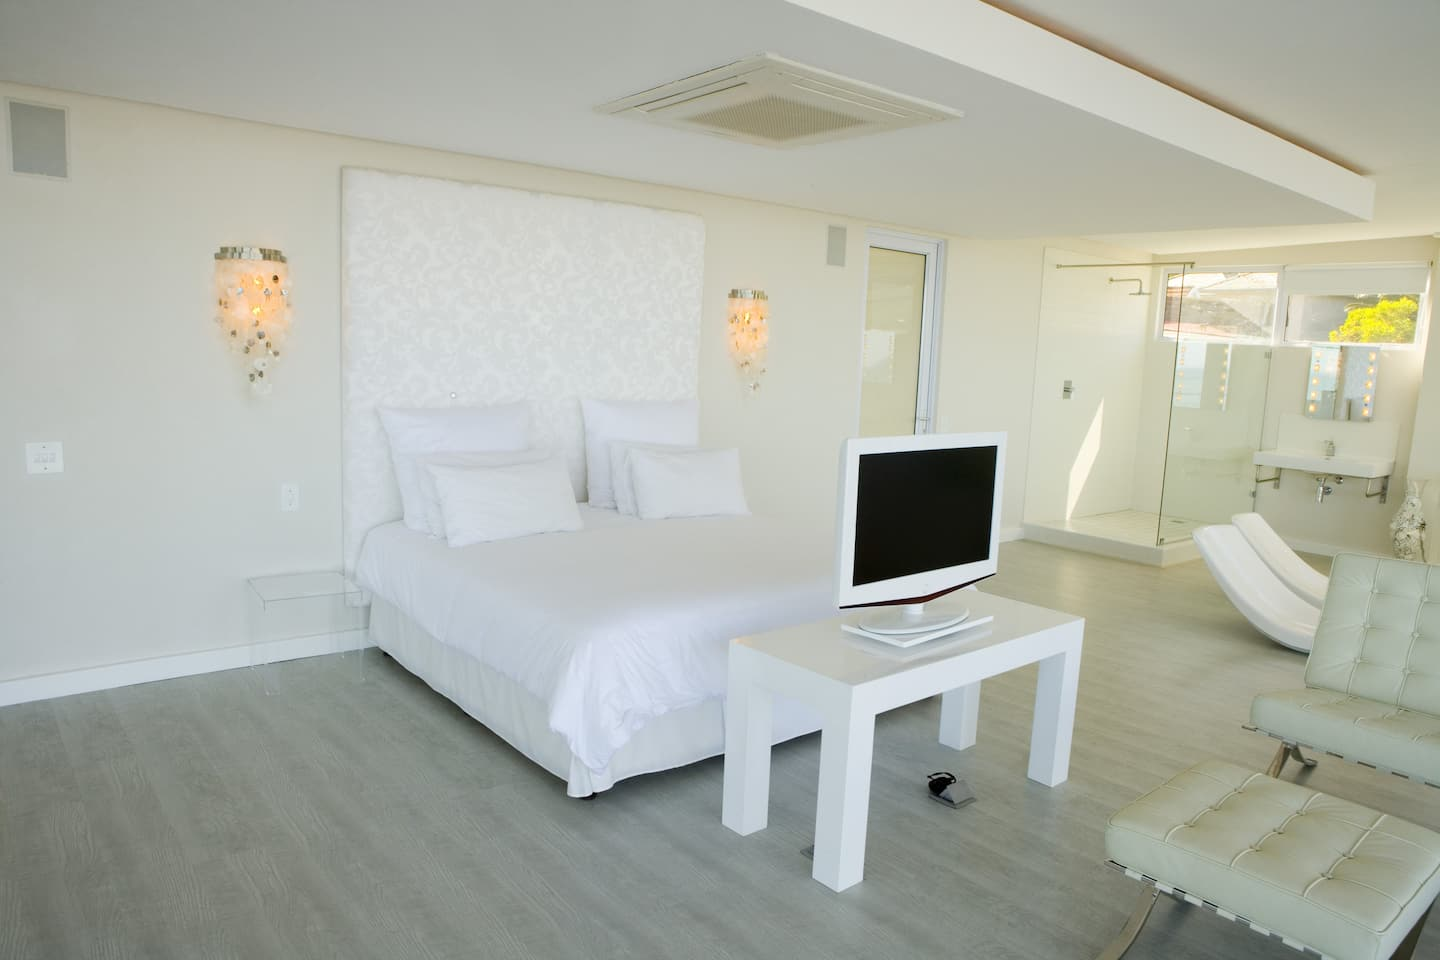 A bright white bedroom with retro-styled sconces on the wall on either side of the bed.